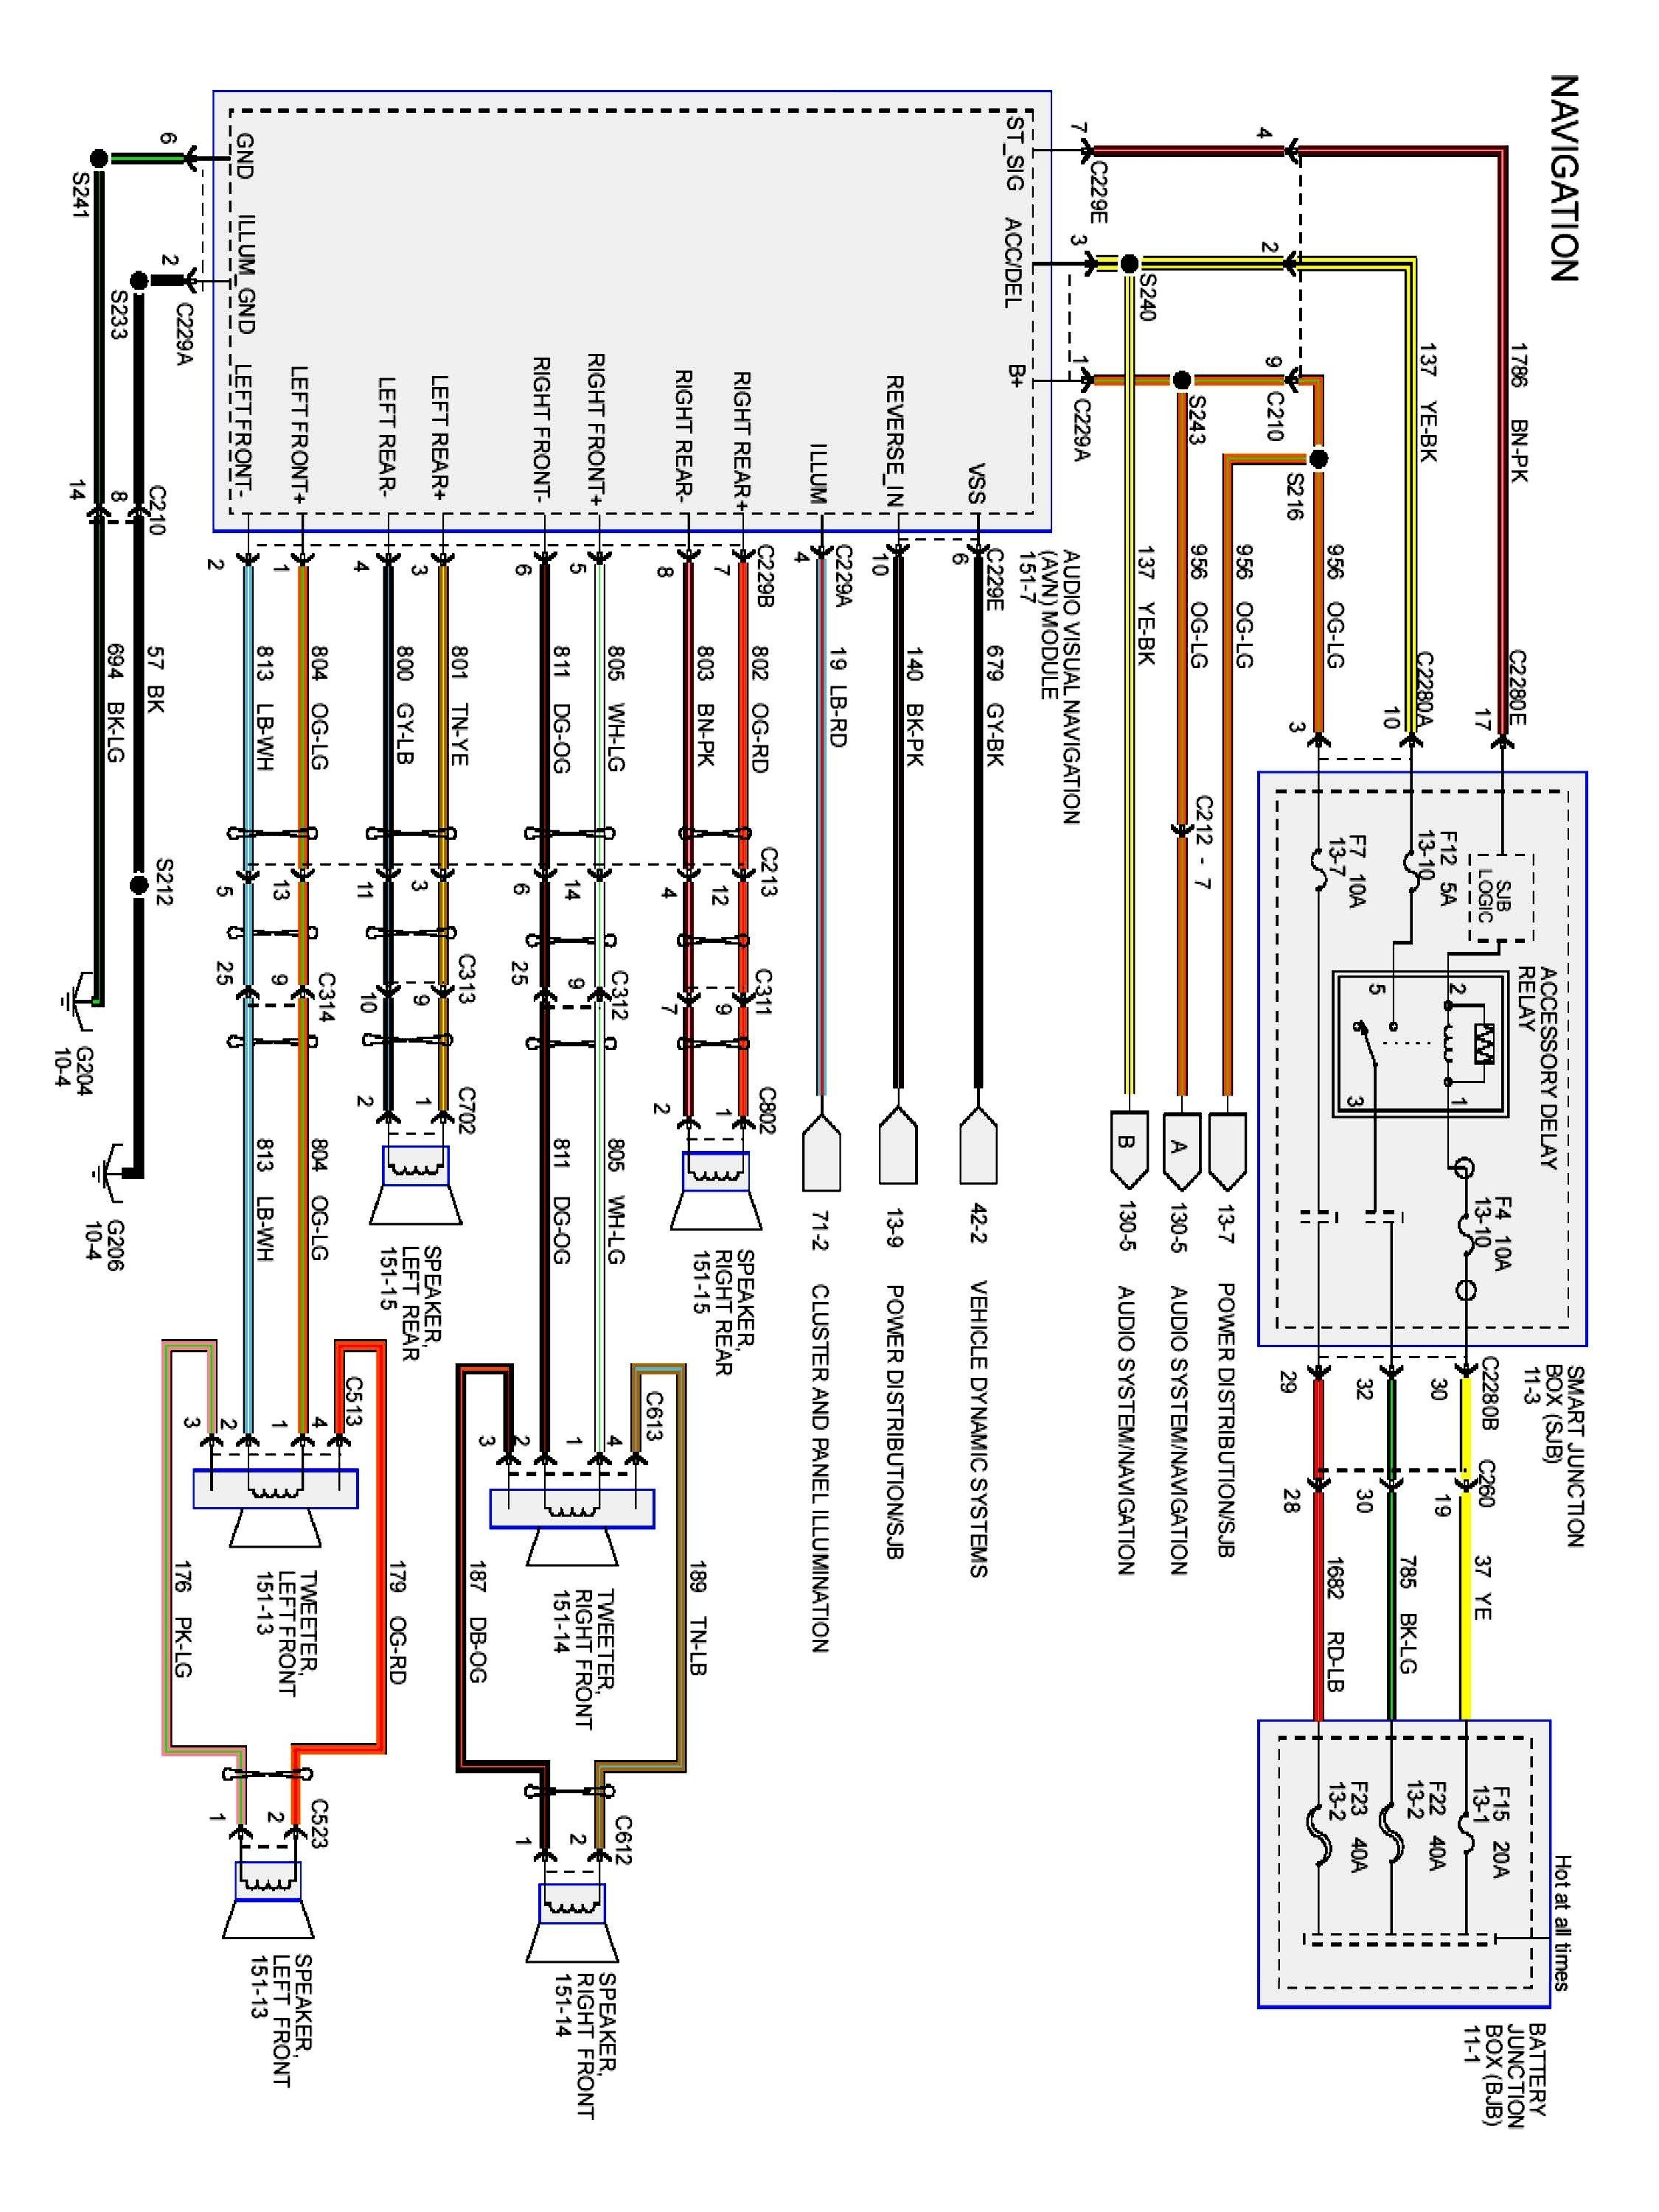 Ford Taurus Radio Wiring Diagram 99 Dodge Ram 1500 Radio Wiring ...